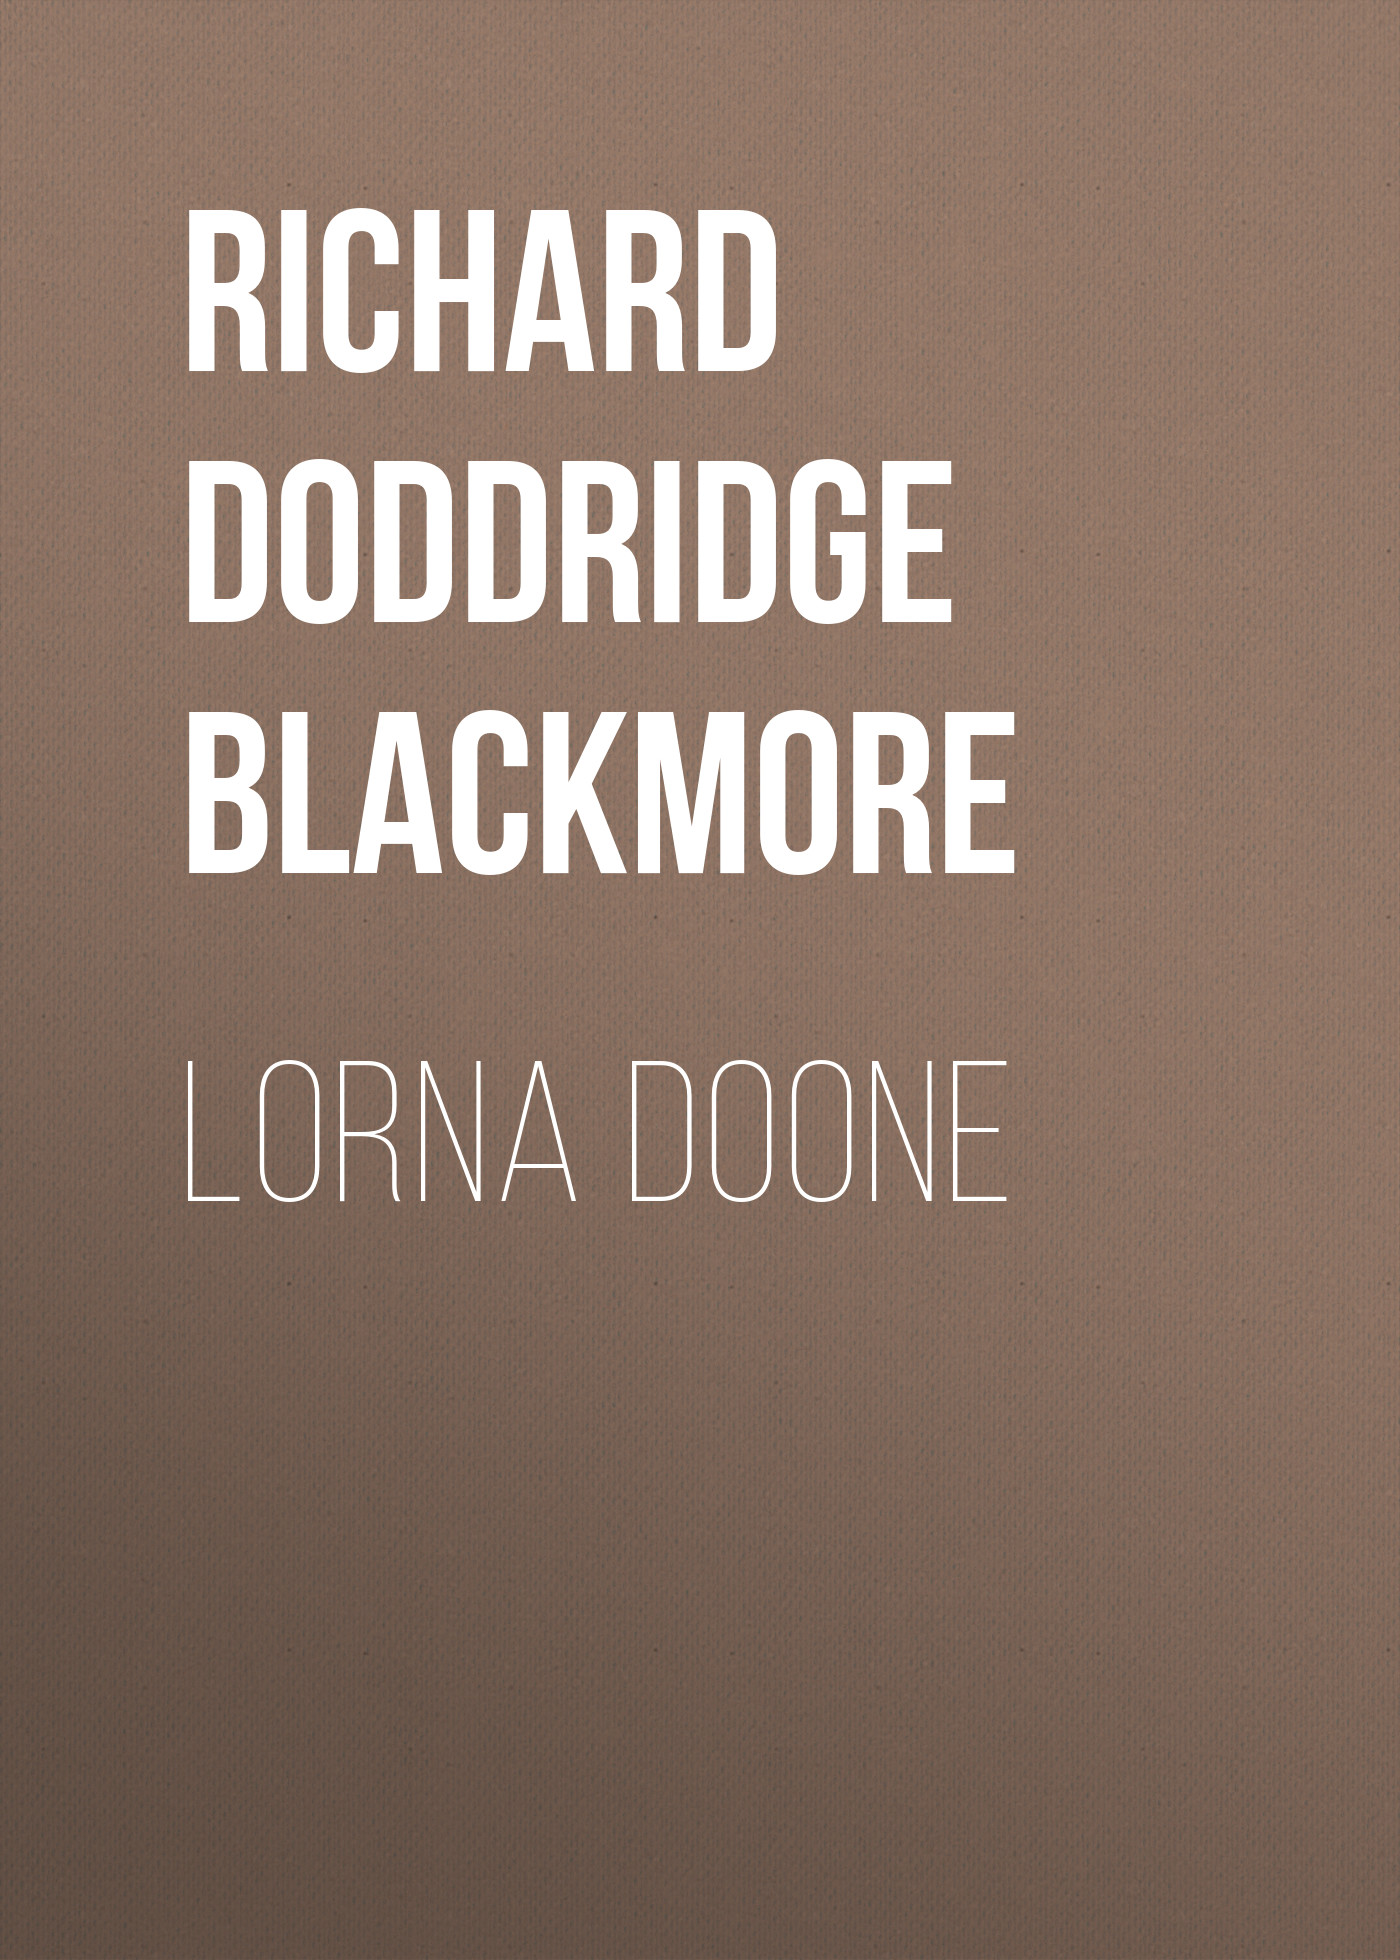 Richard Doddridge Blackmore Lorna Doone blackmore richard doddridge clara vaughan volume 1 of 3